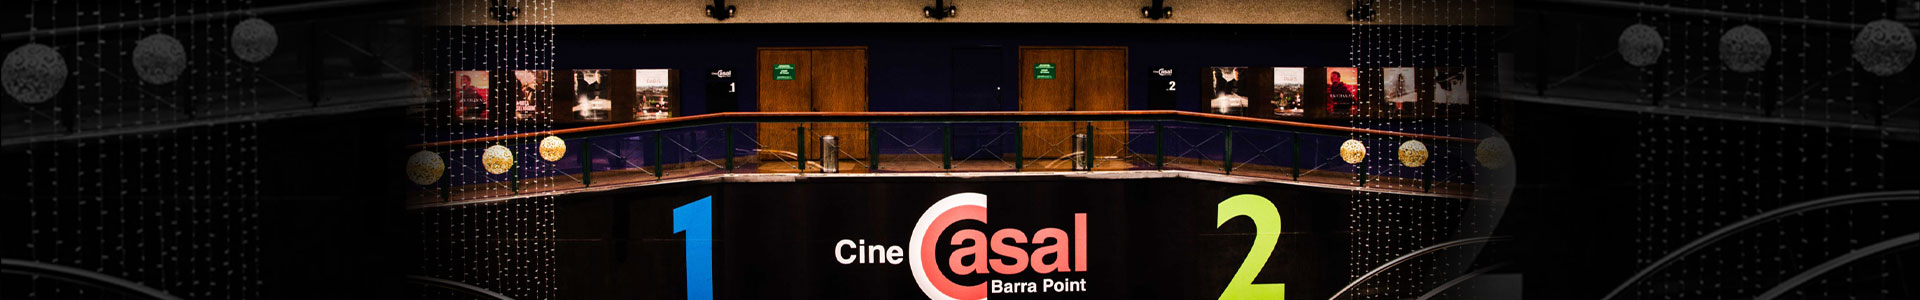 Cine Casal Barra Point